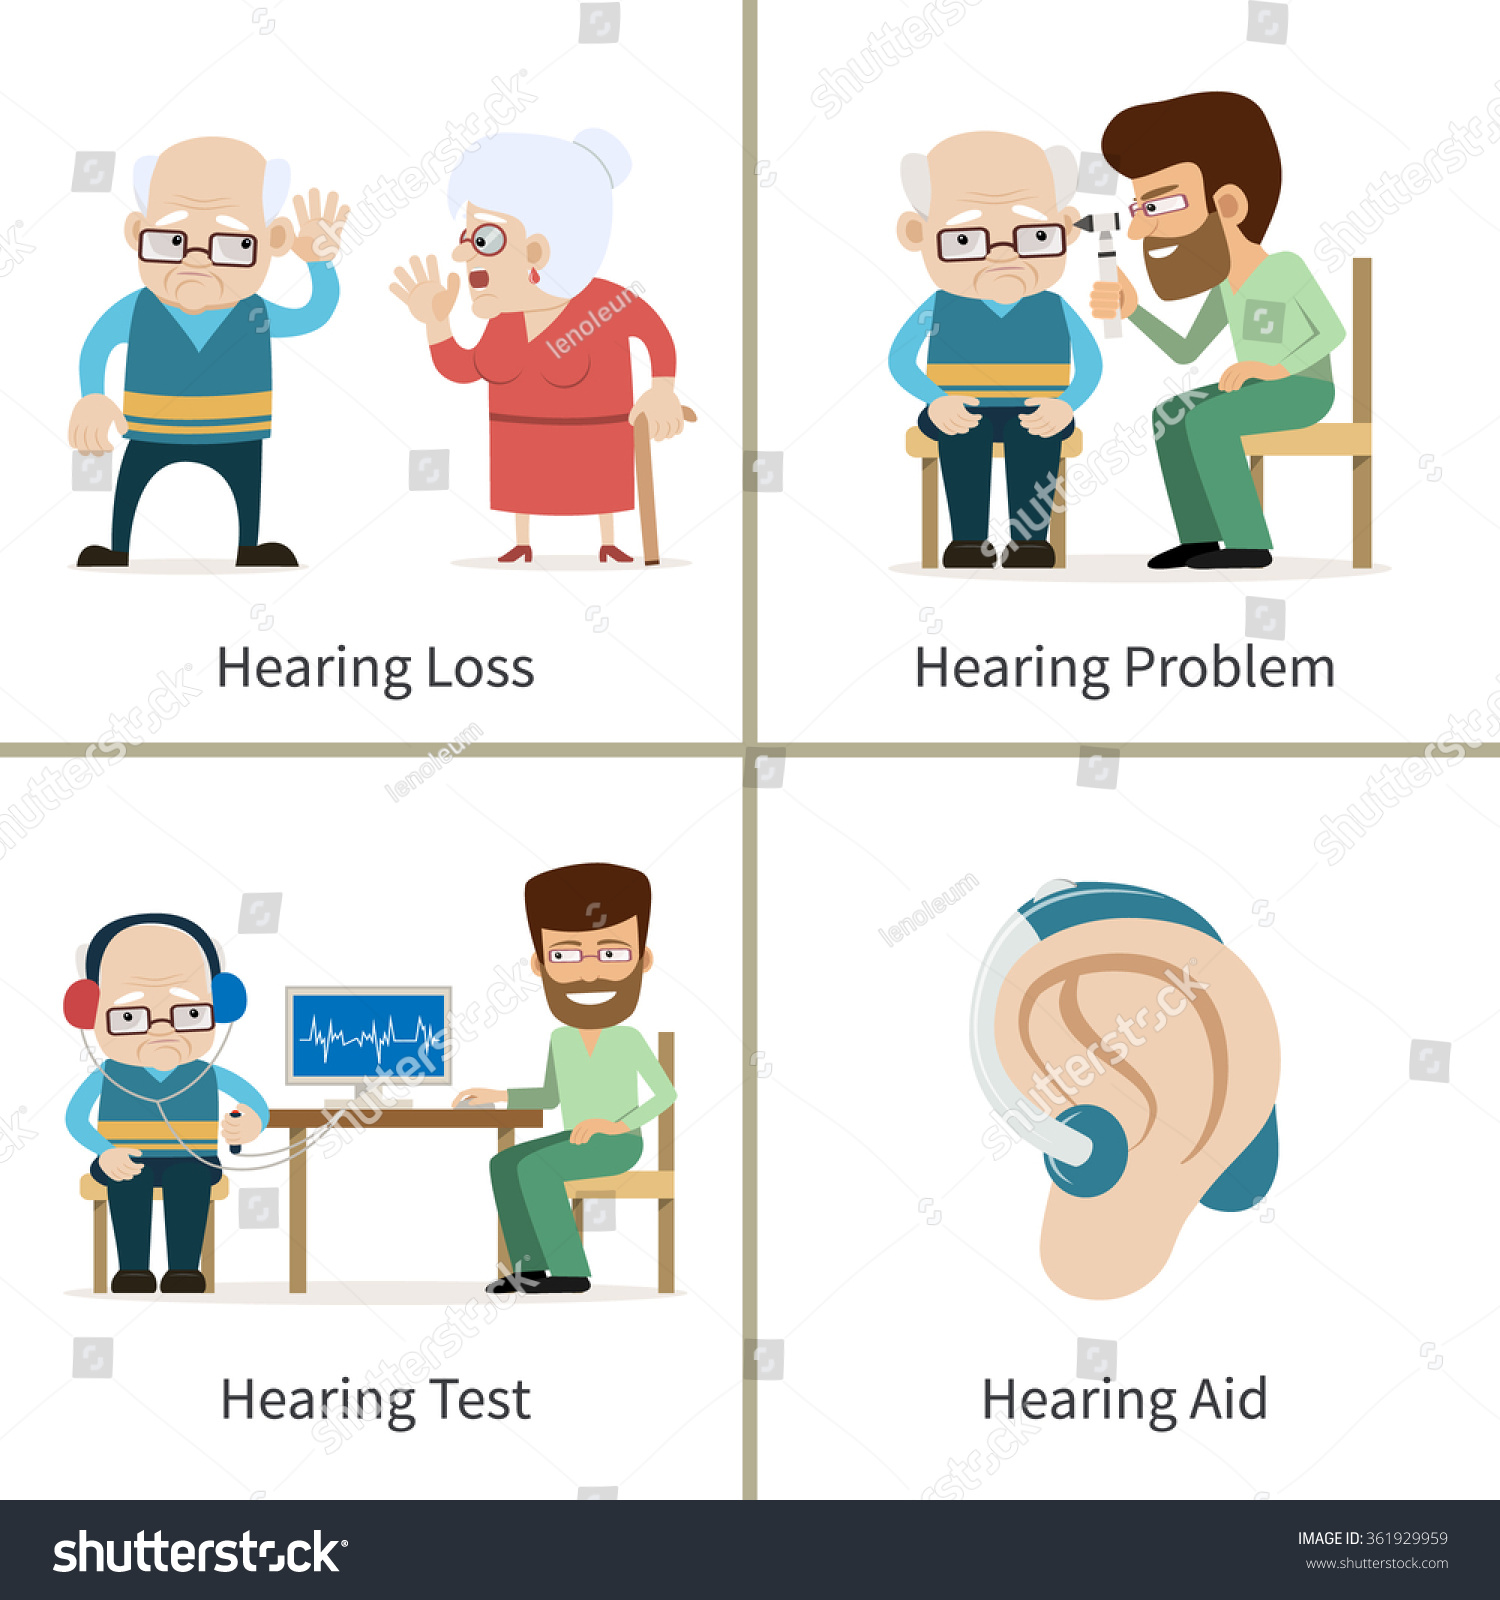 Hearing Loss Set Vector Illustrations Cartoon Stock Vector